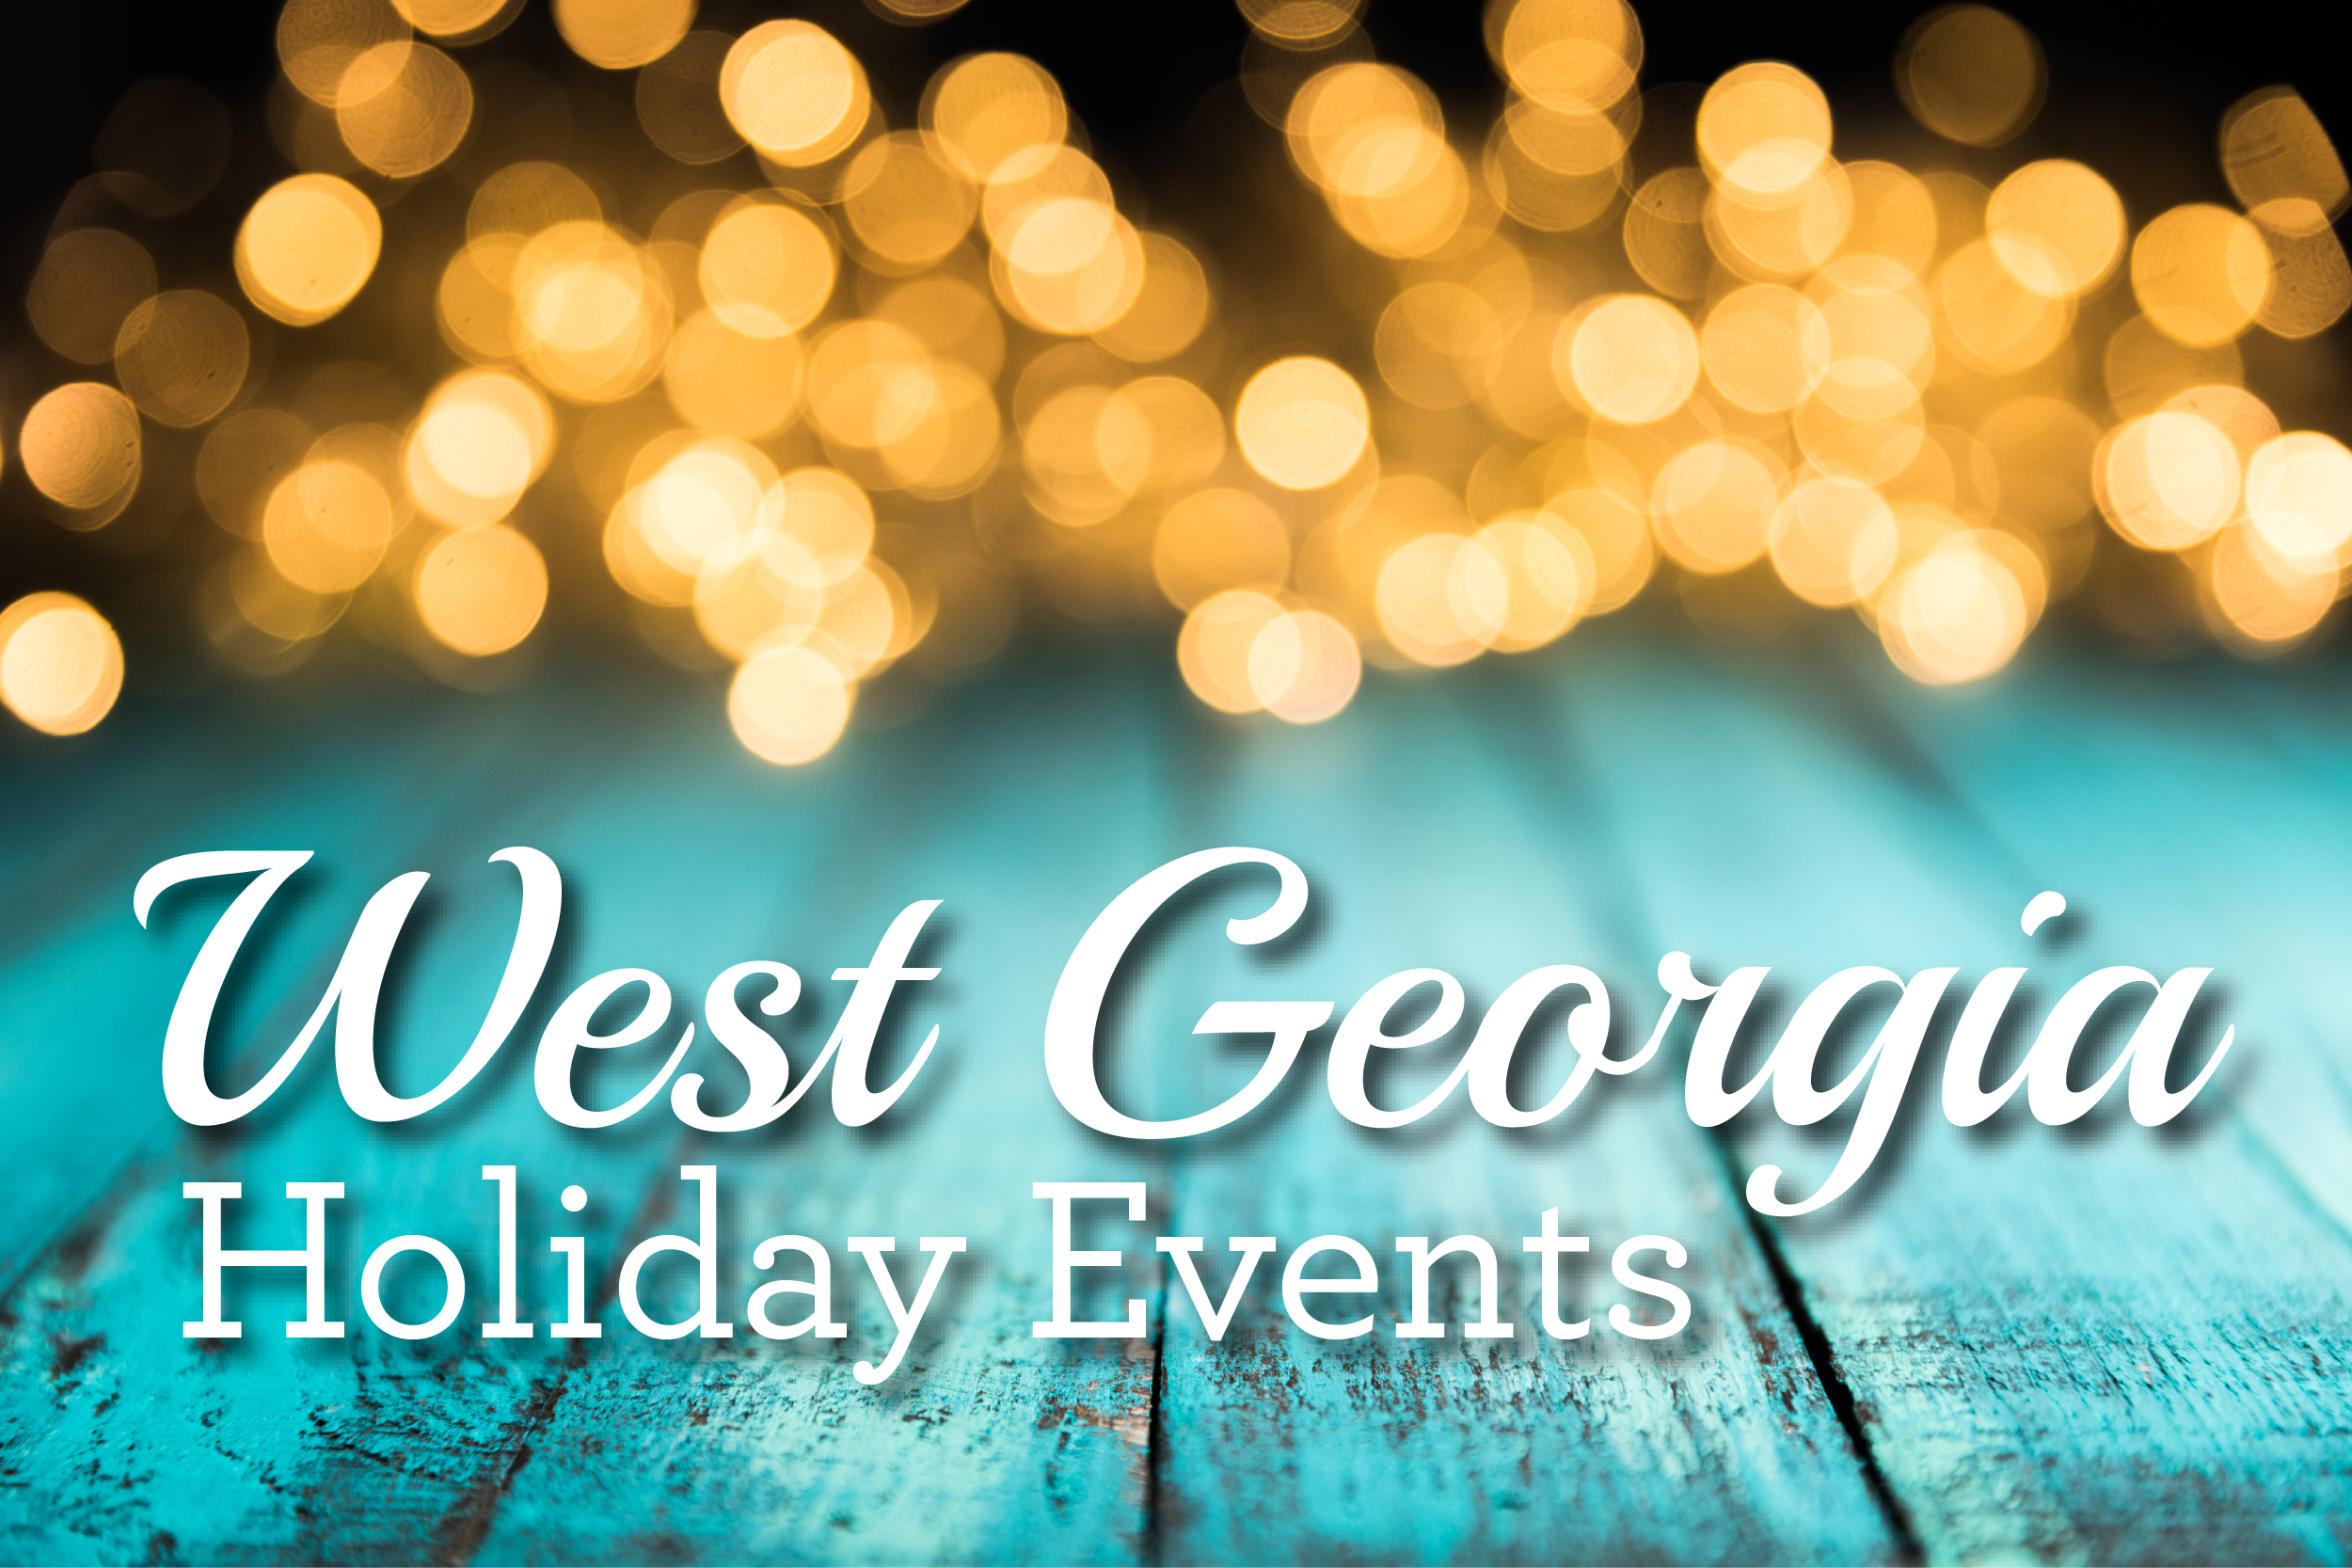 West Georgia Holiday Events 2018 - News & Views